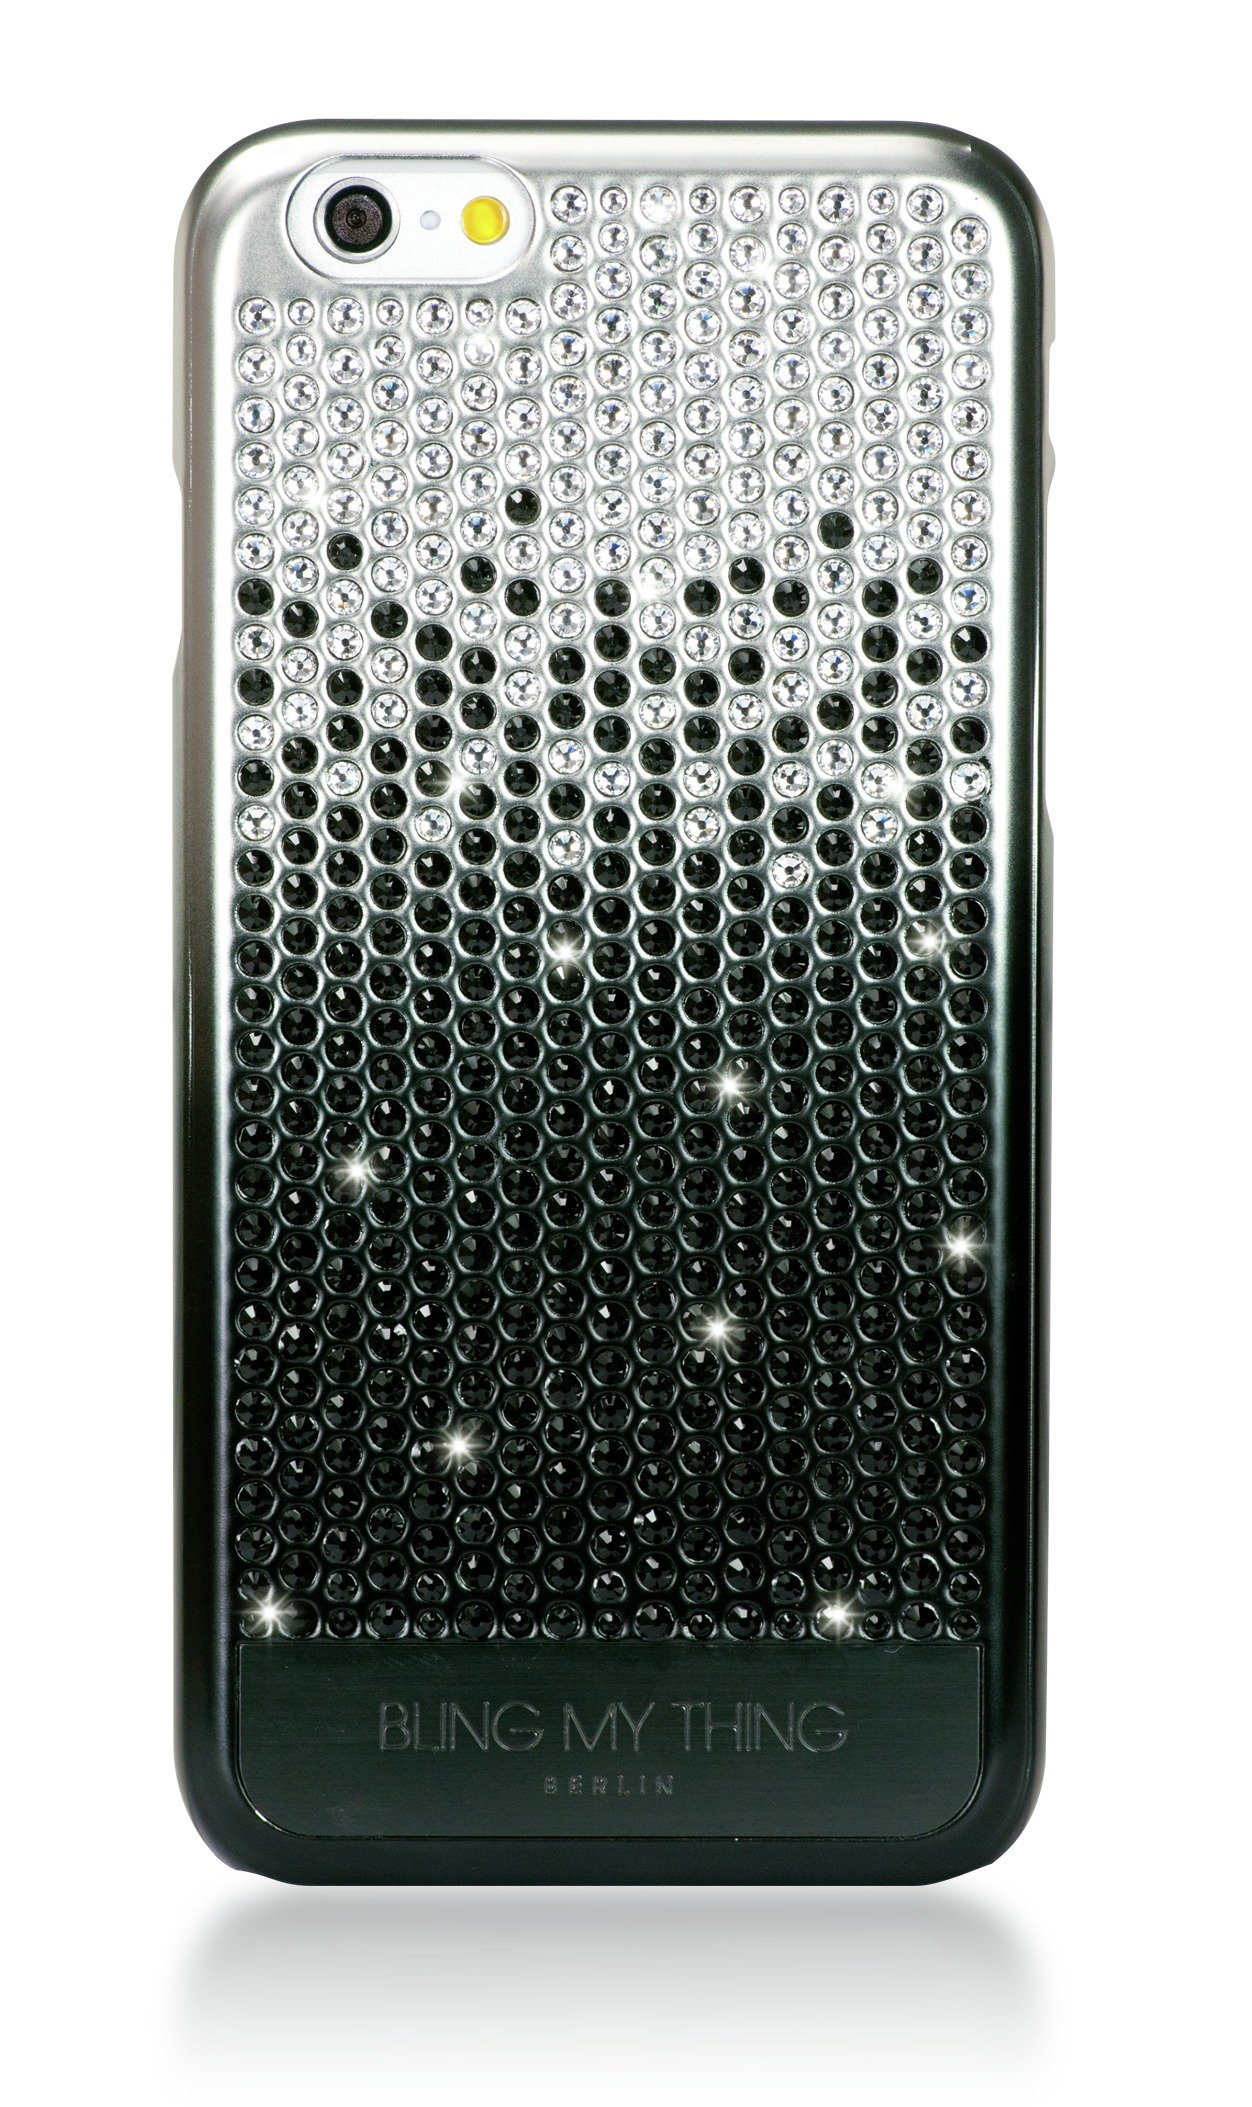 Image of Bling My Thing iPhone 6 Case - Vogue.